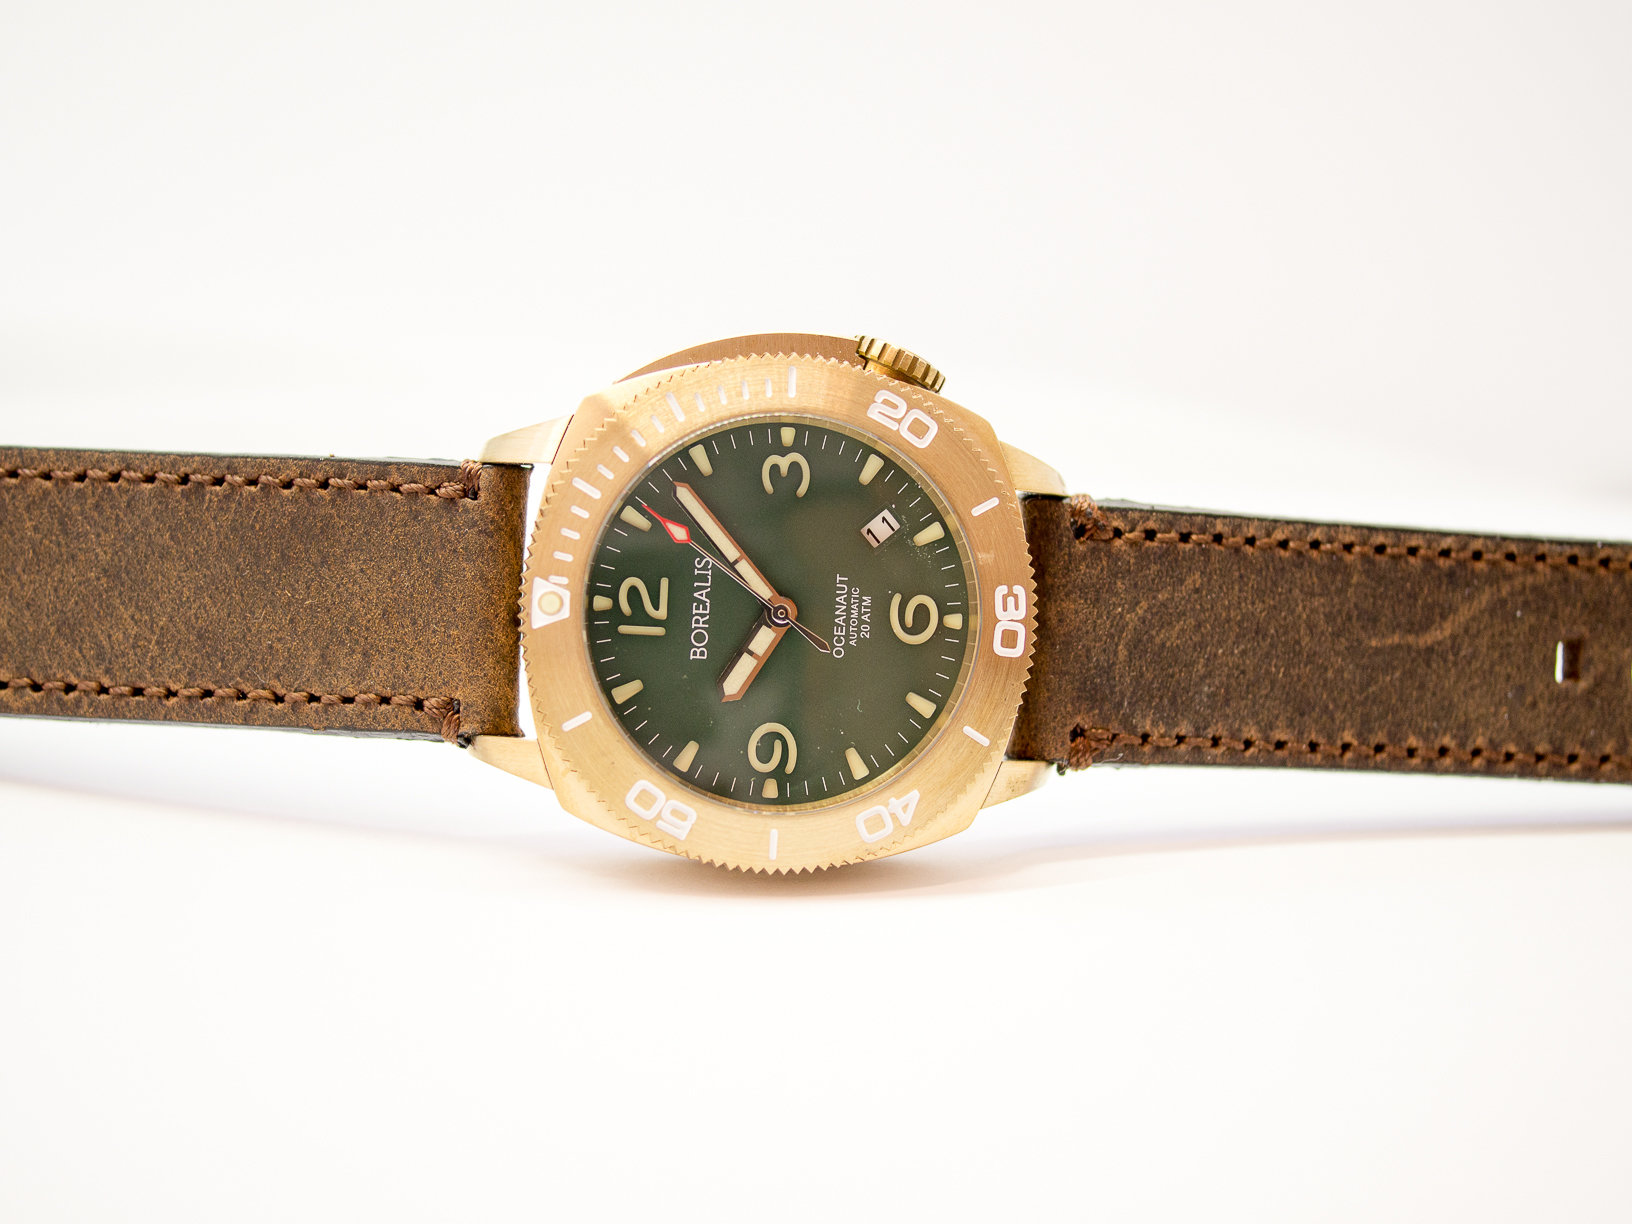 Borealis Oceanaut Aluminum Bronze Green Date 200m NH35 Automatic Diver Watch